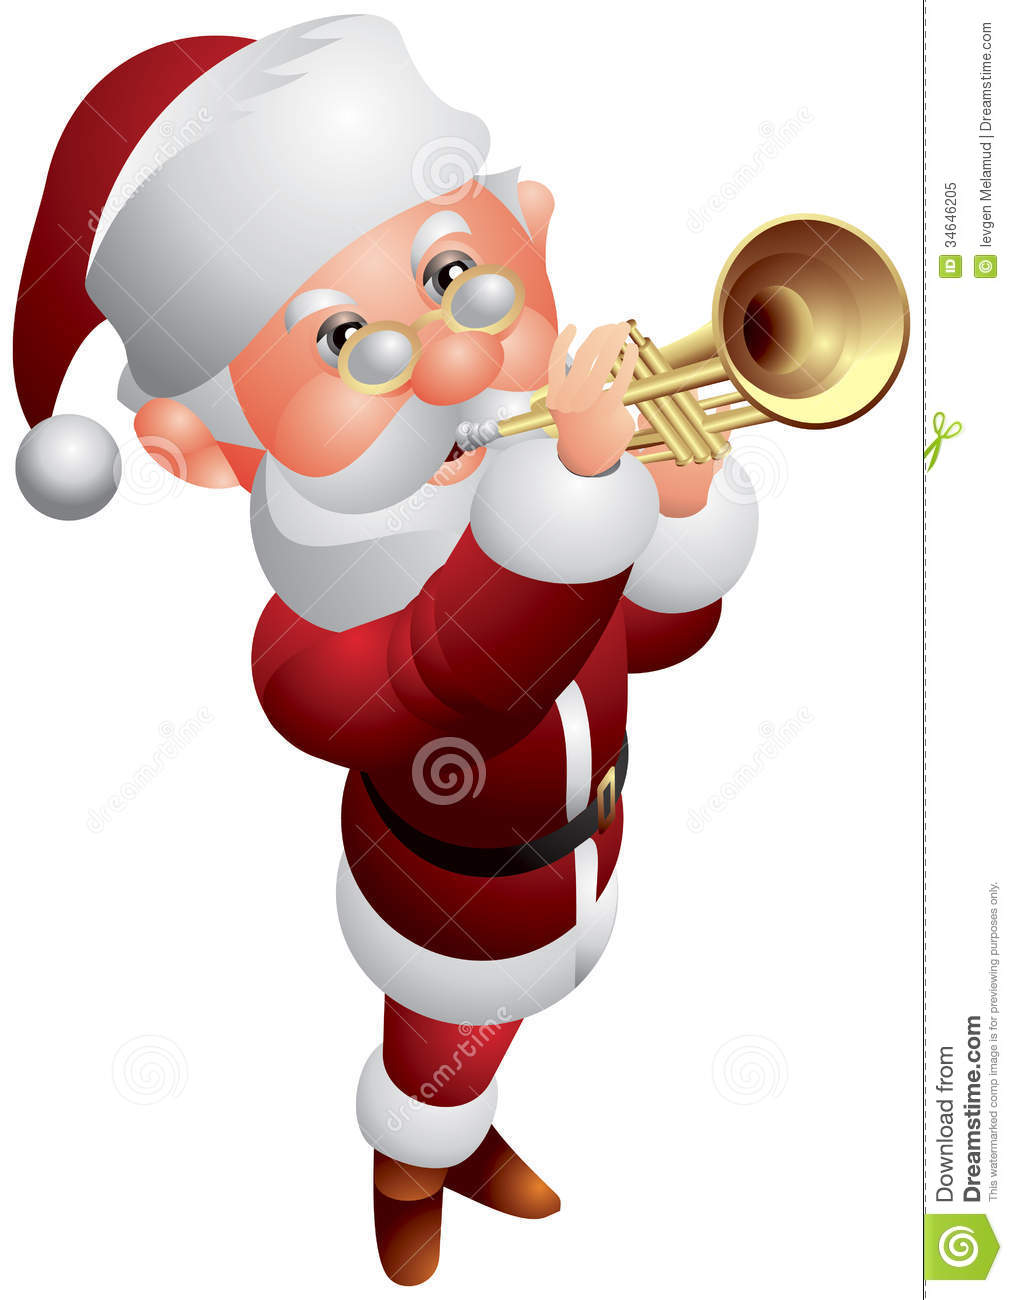 santa claus trumpeter christmas musician stock vector illustration rh dreamstime com christmas angel with trumpet clip art Christmas Nativity Scene Clip Art